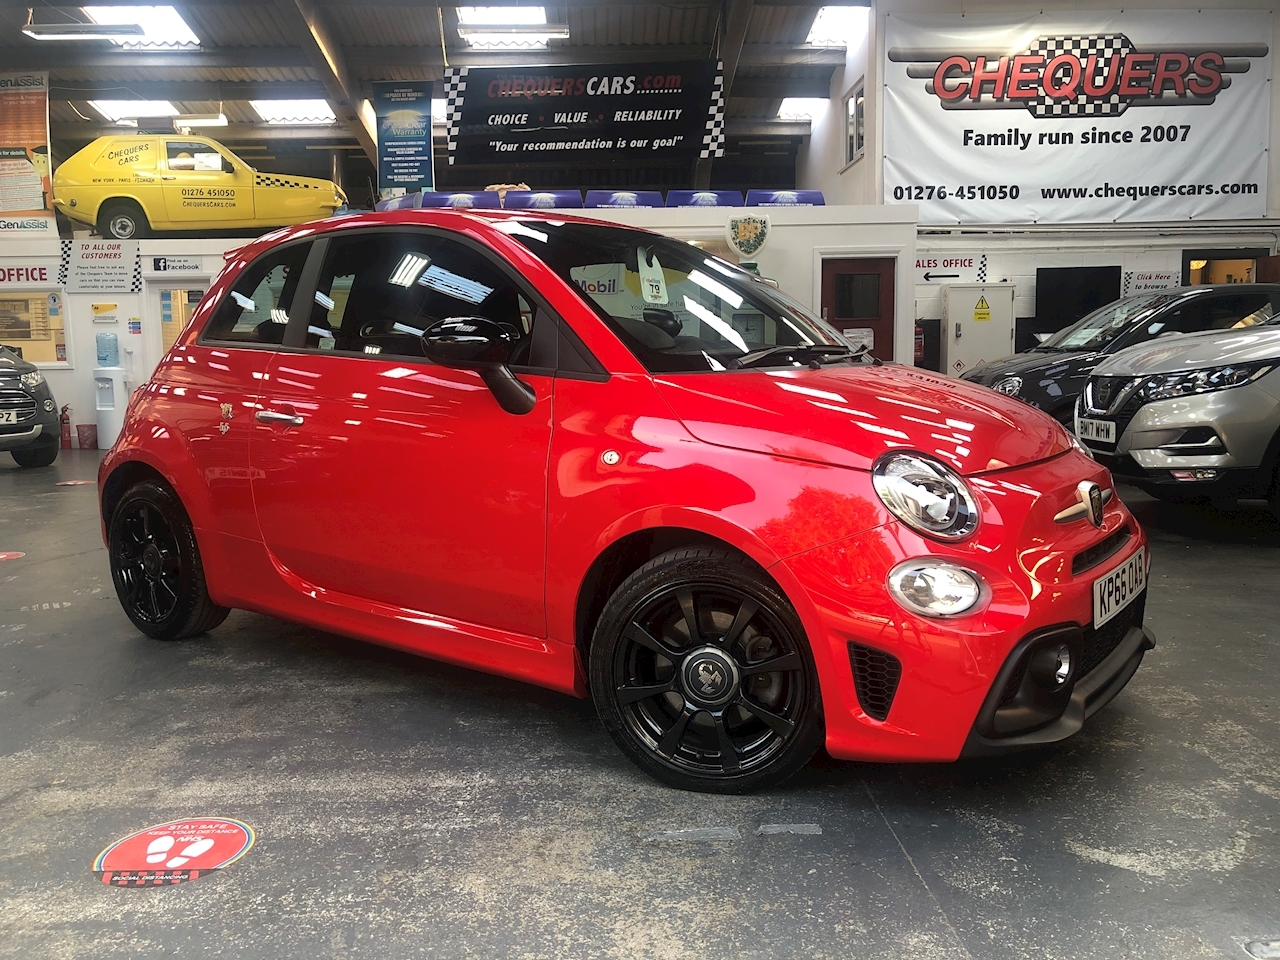 Abarth 500 Abarth 595 1.4 Tjet 145hp Hatchback 1.4 Manual Petrol